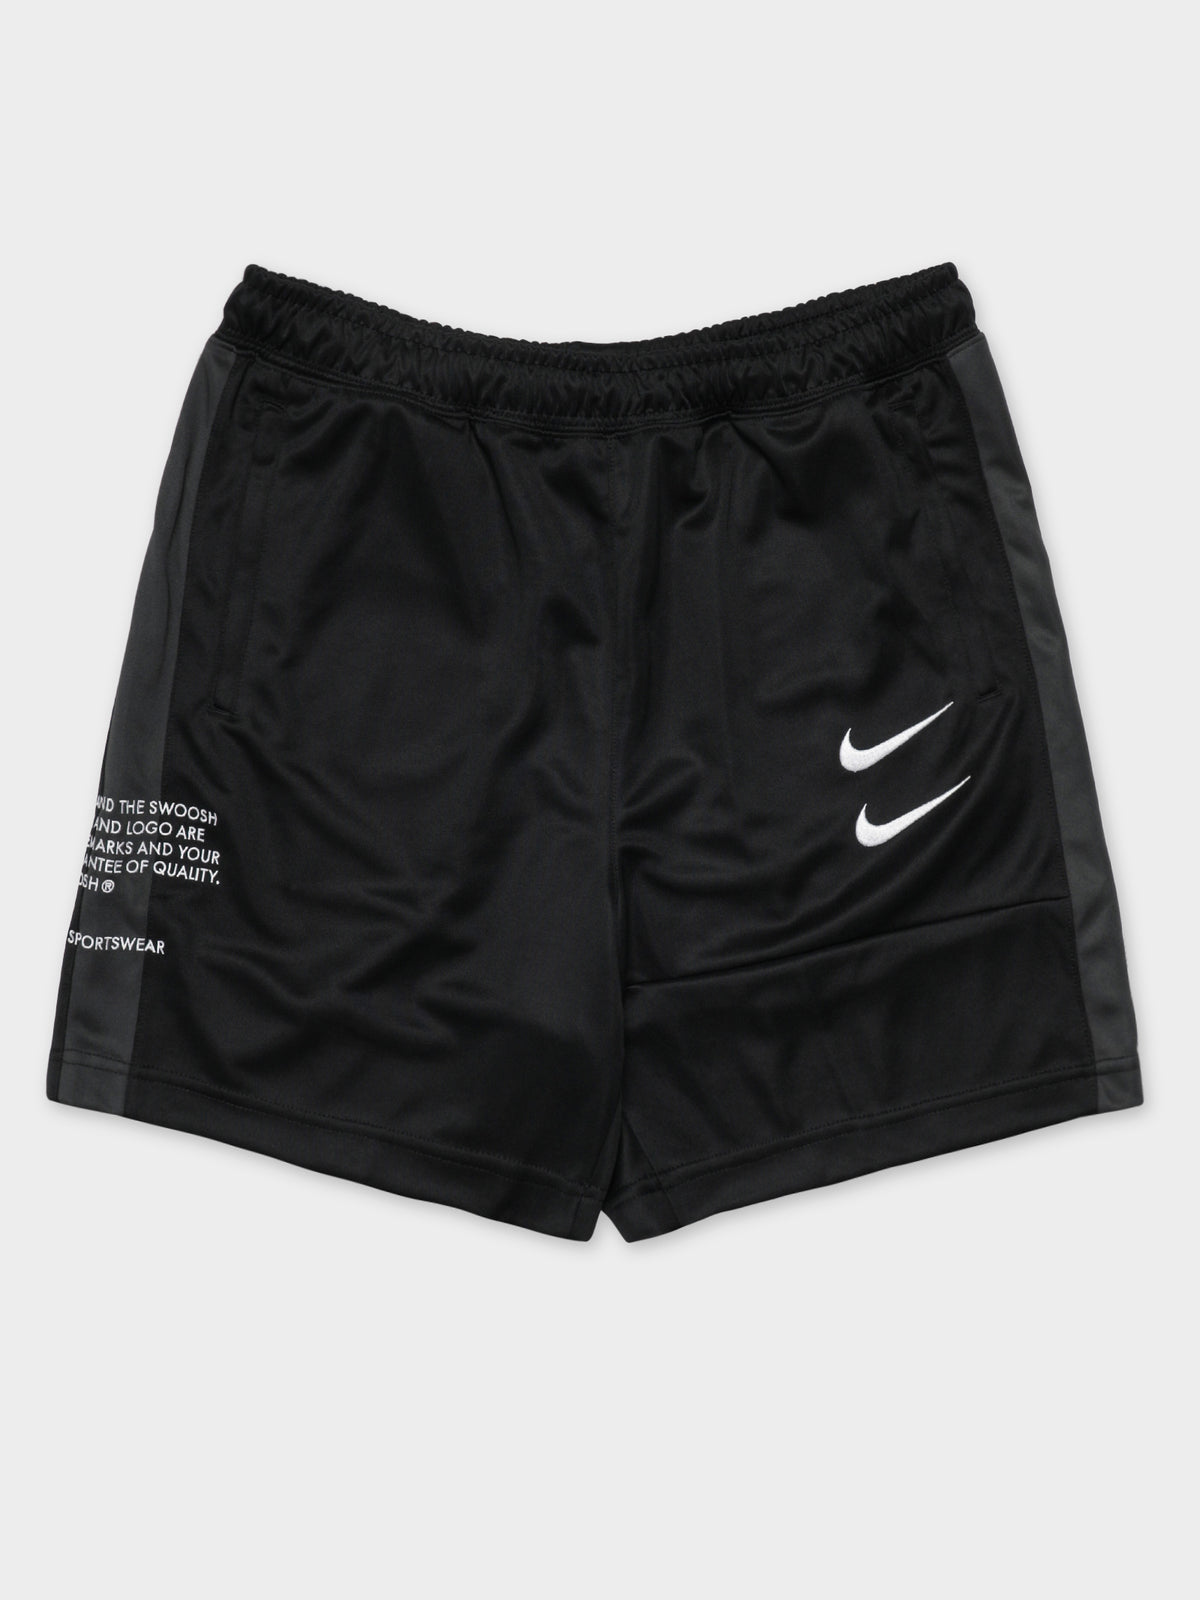 NSW Swoosh Shorts in Black